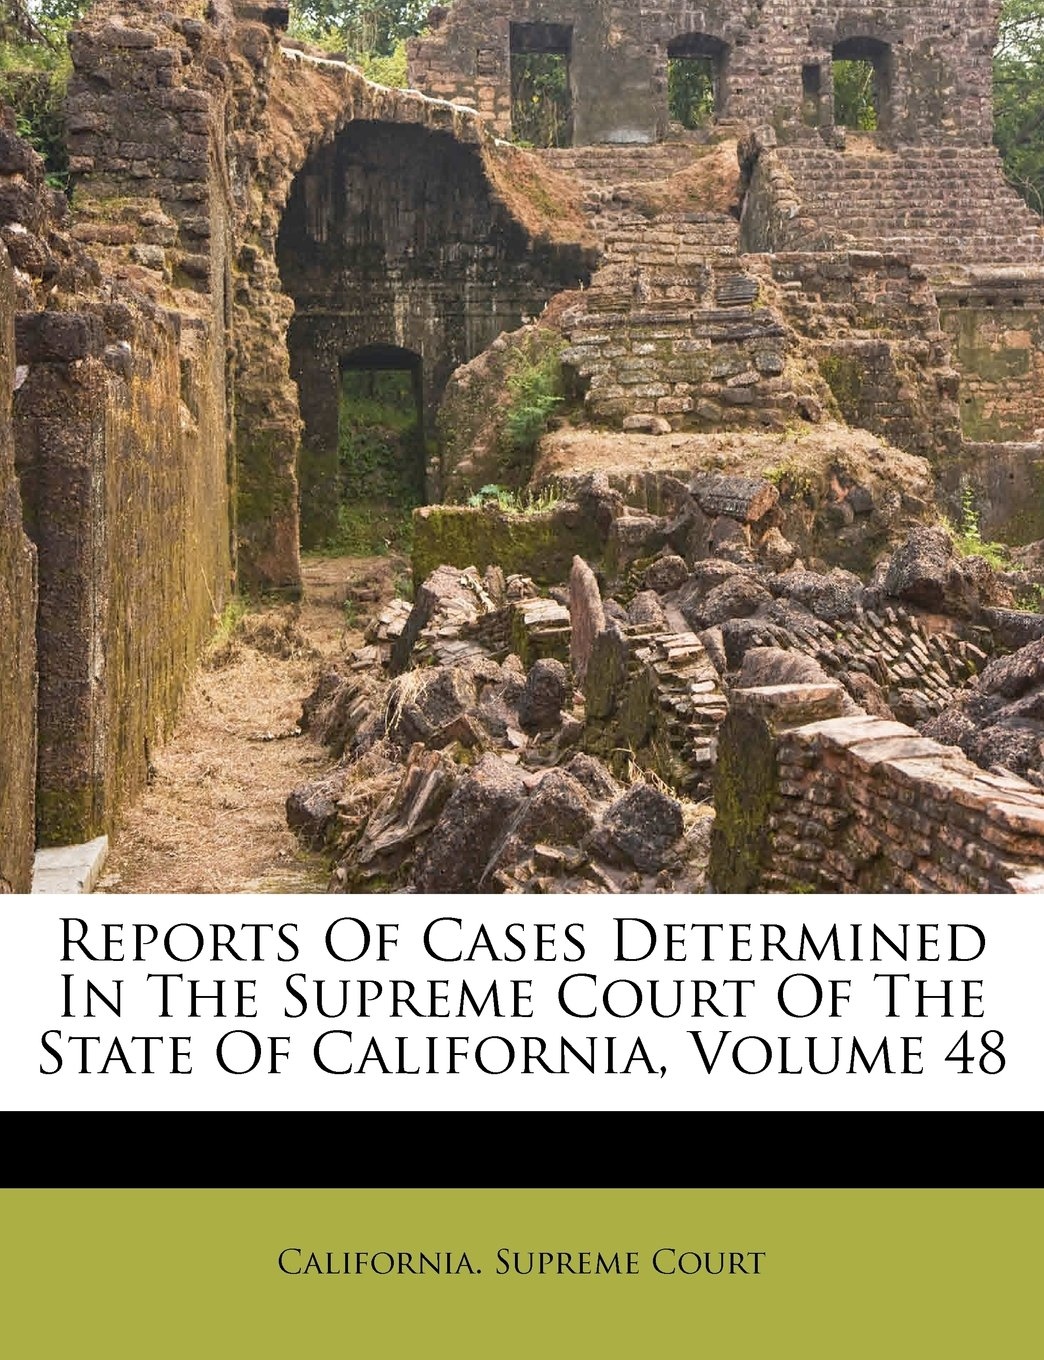 Download Reports Of Cases Determined In The Supreme Court Of The State Of California, Volume 48 pdf epub